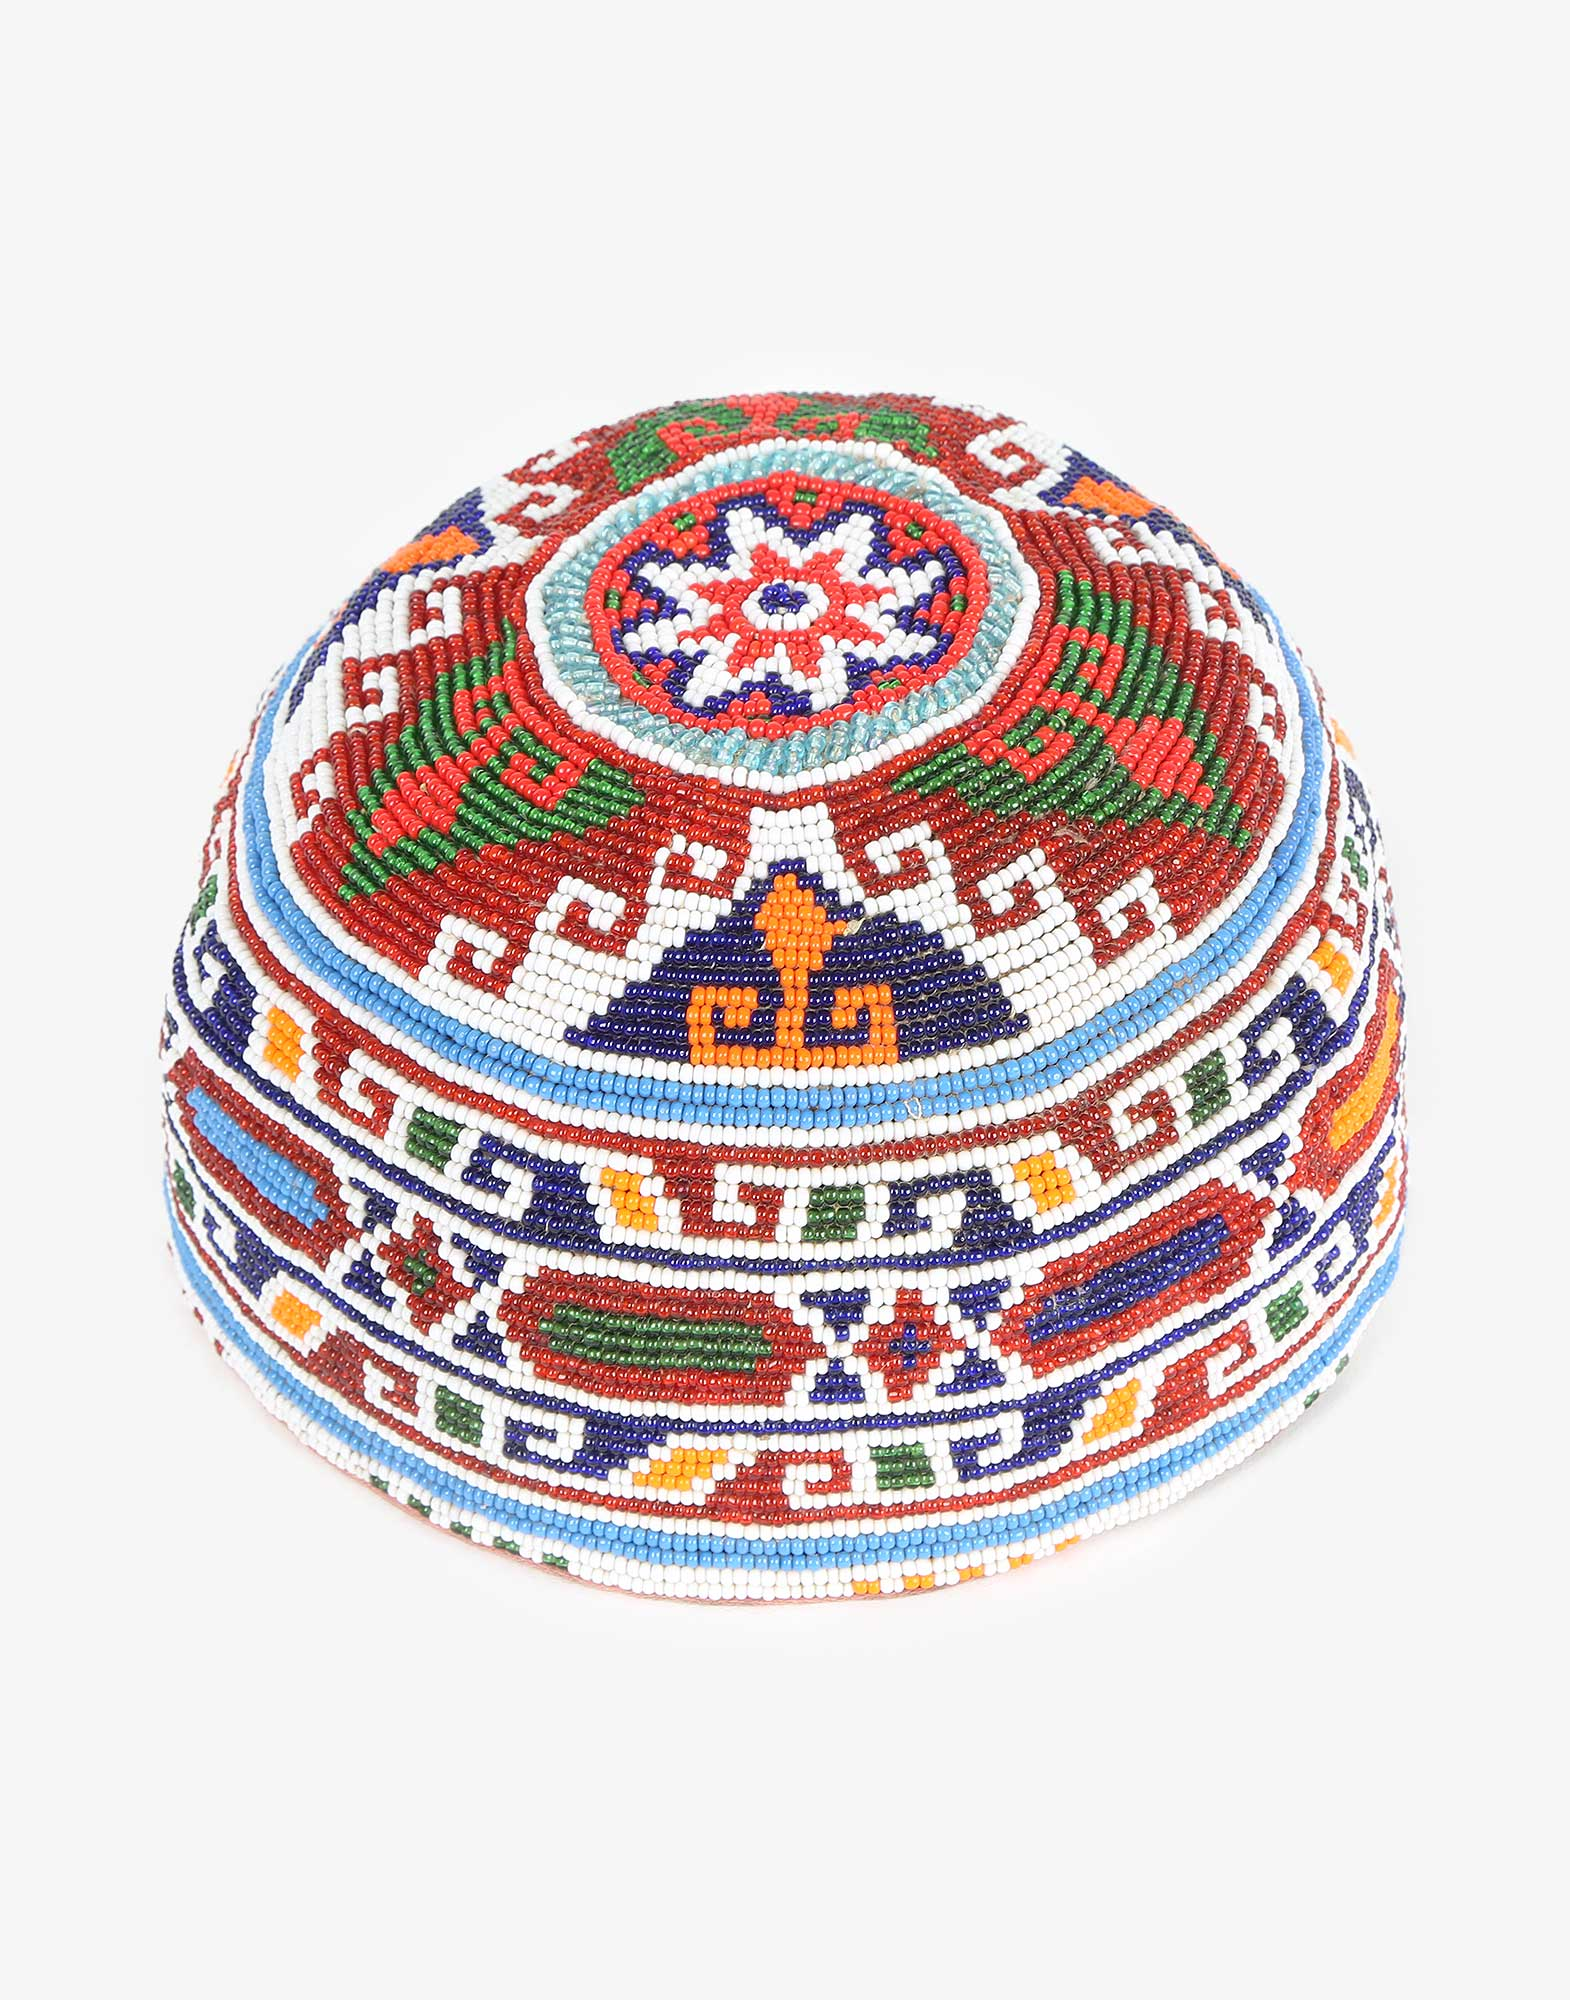 Vintage Beaded Uzbek Headwear